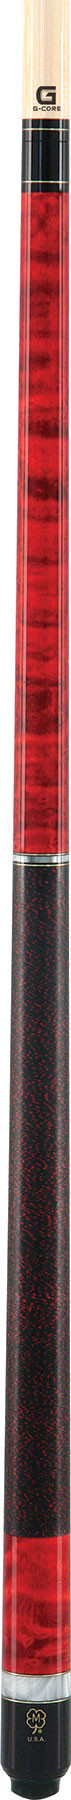 McDermott G208 G-Series Pool Cue - Red